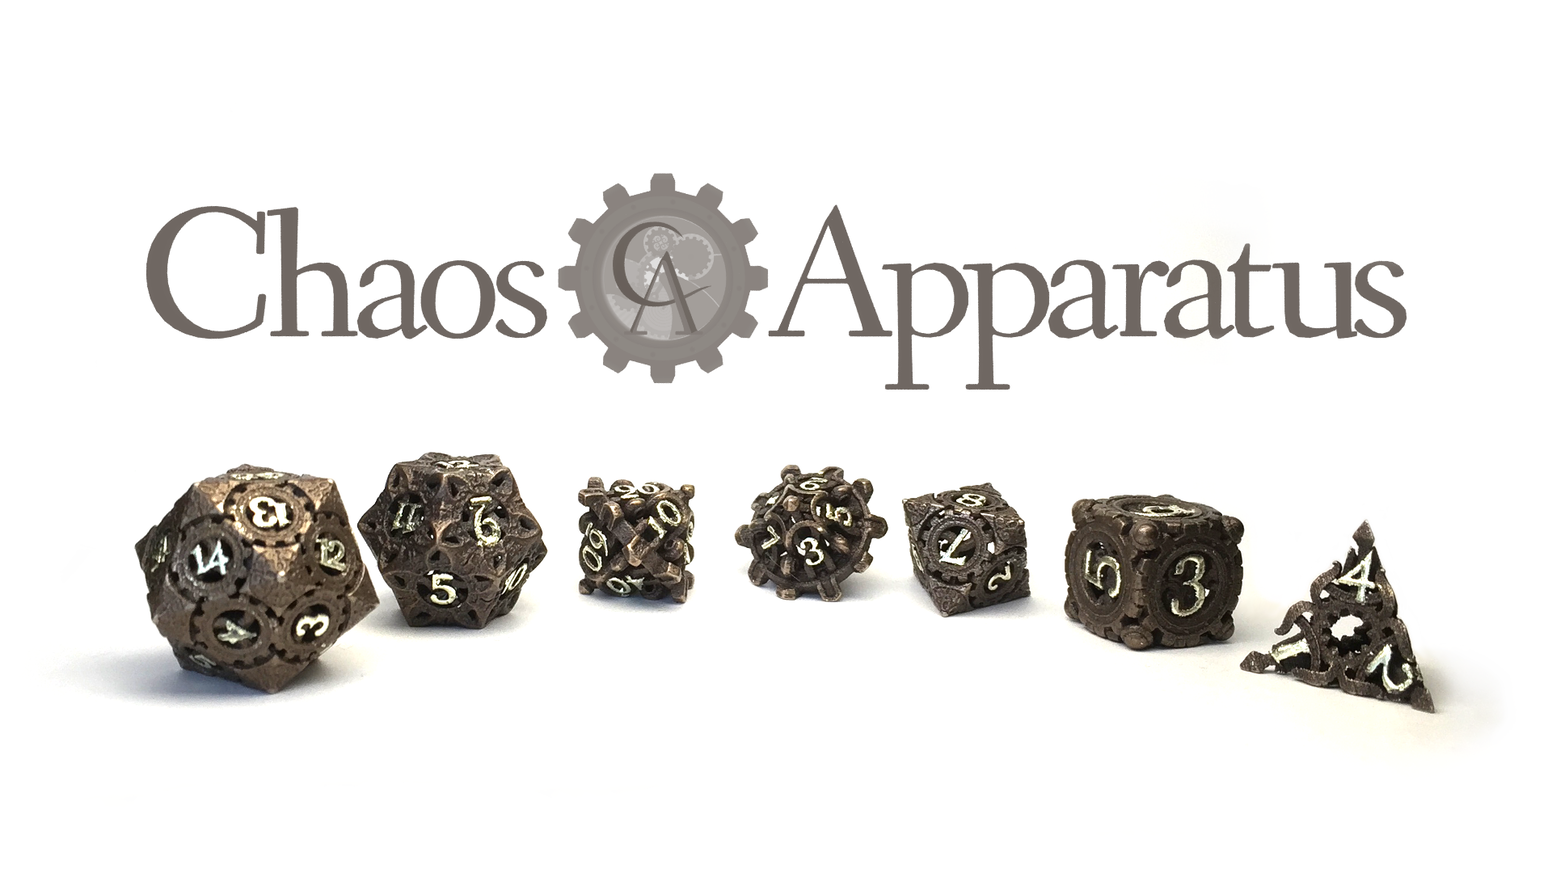 Beautiful and precise steampunk dice 3D printed in stainless steel and gilded with semi-precious or precious metals.